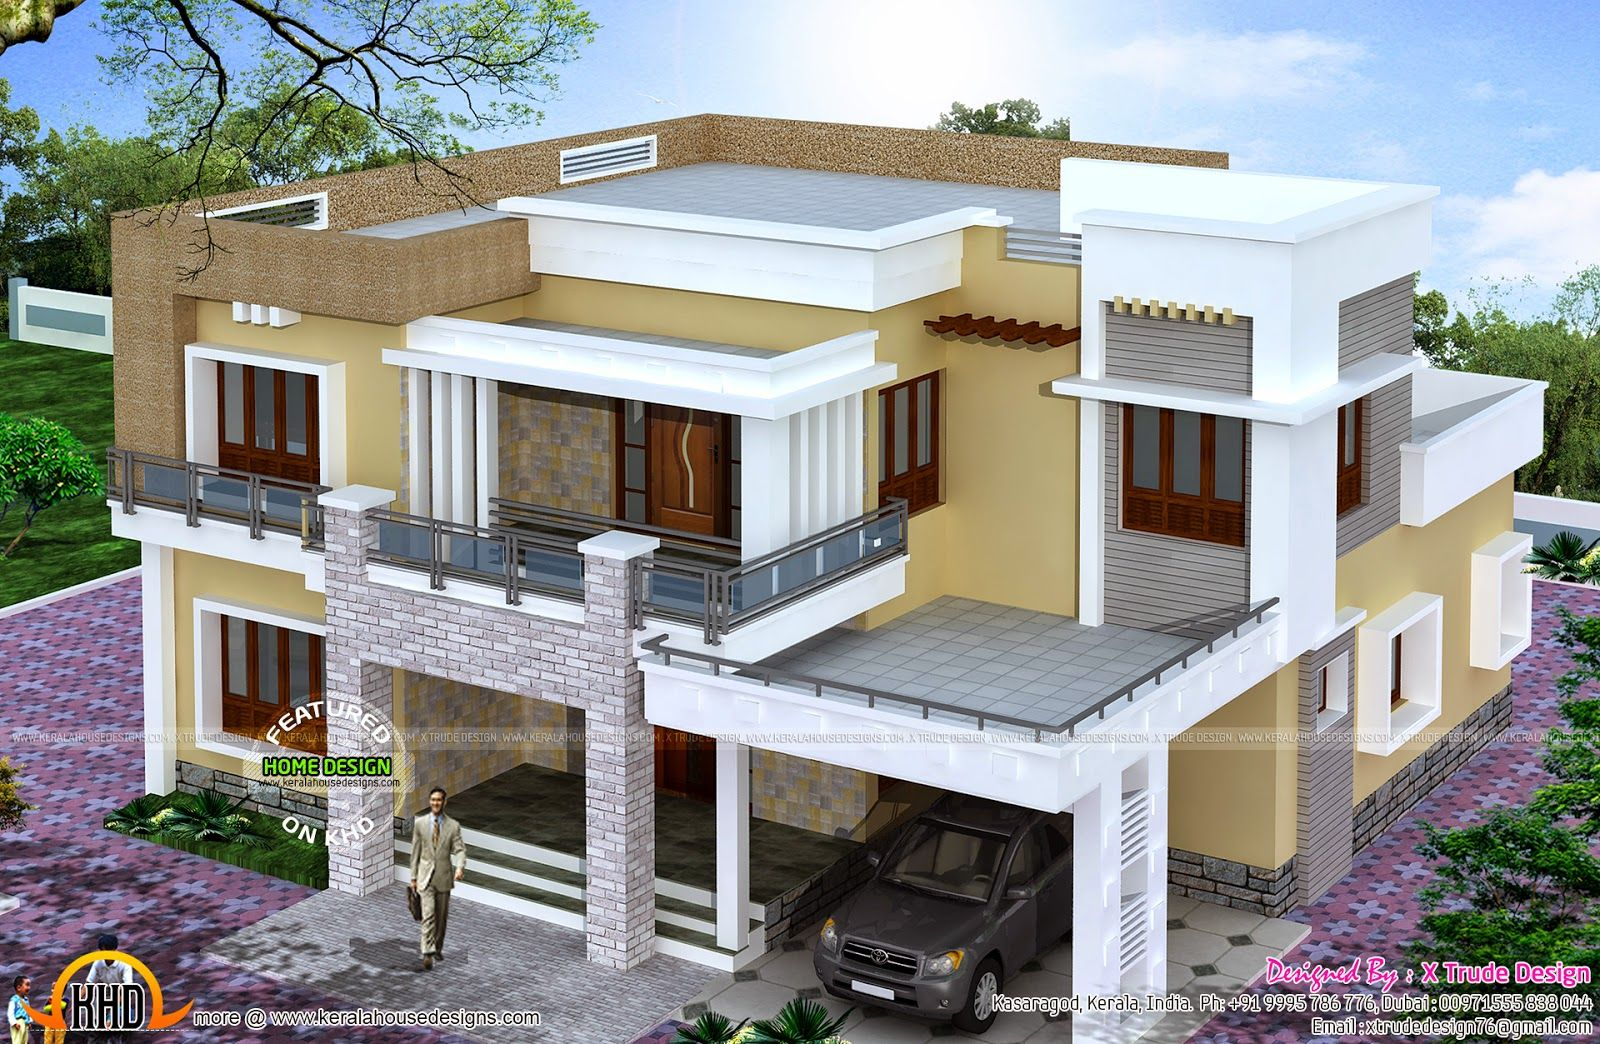 Top View Of 2800 Square Feet (260 Square Meter) (311